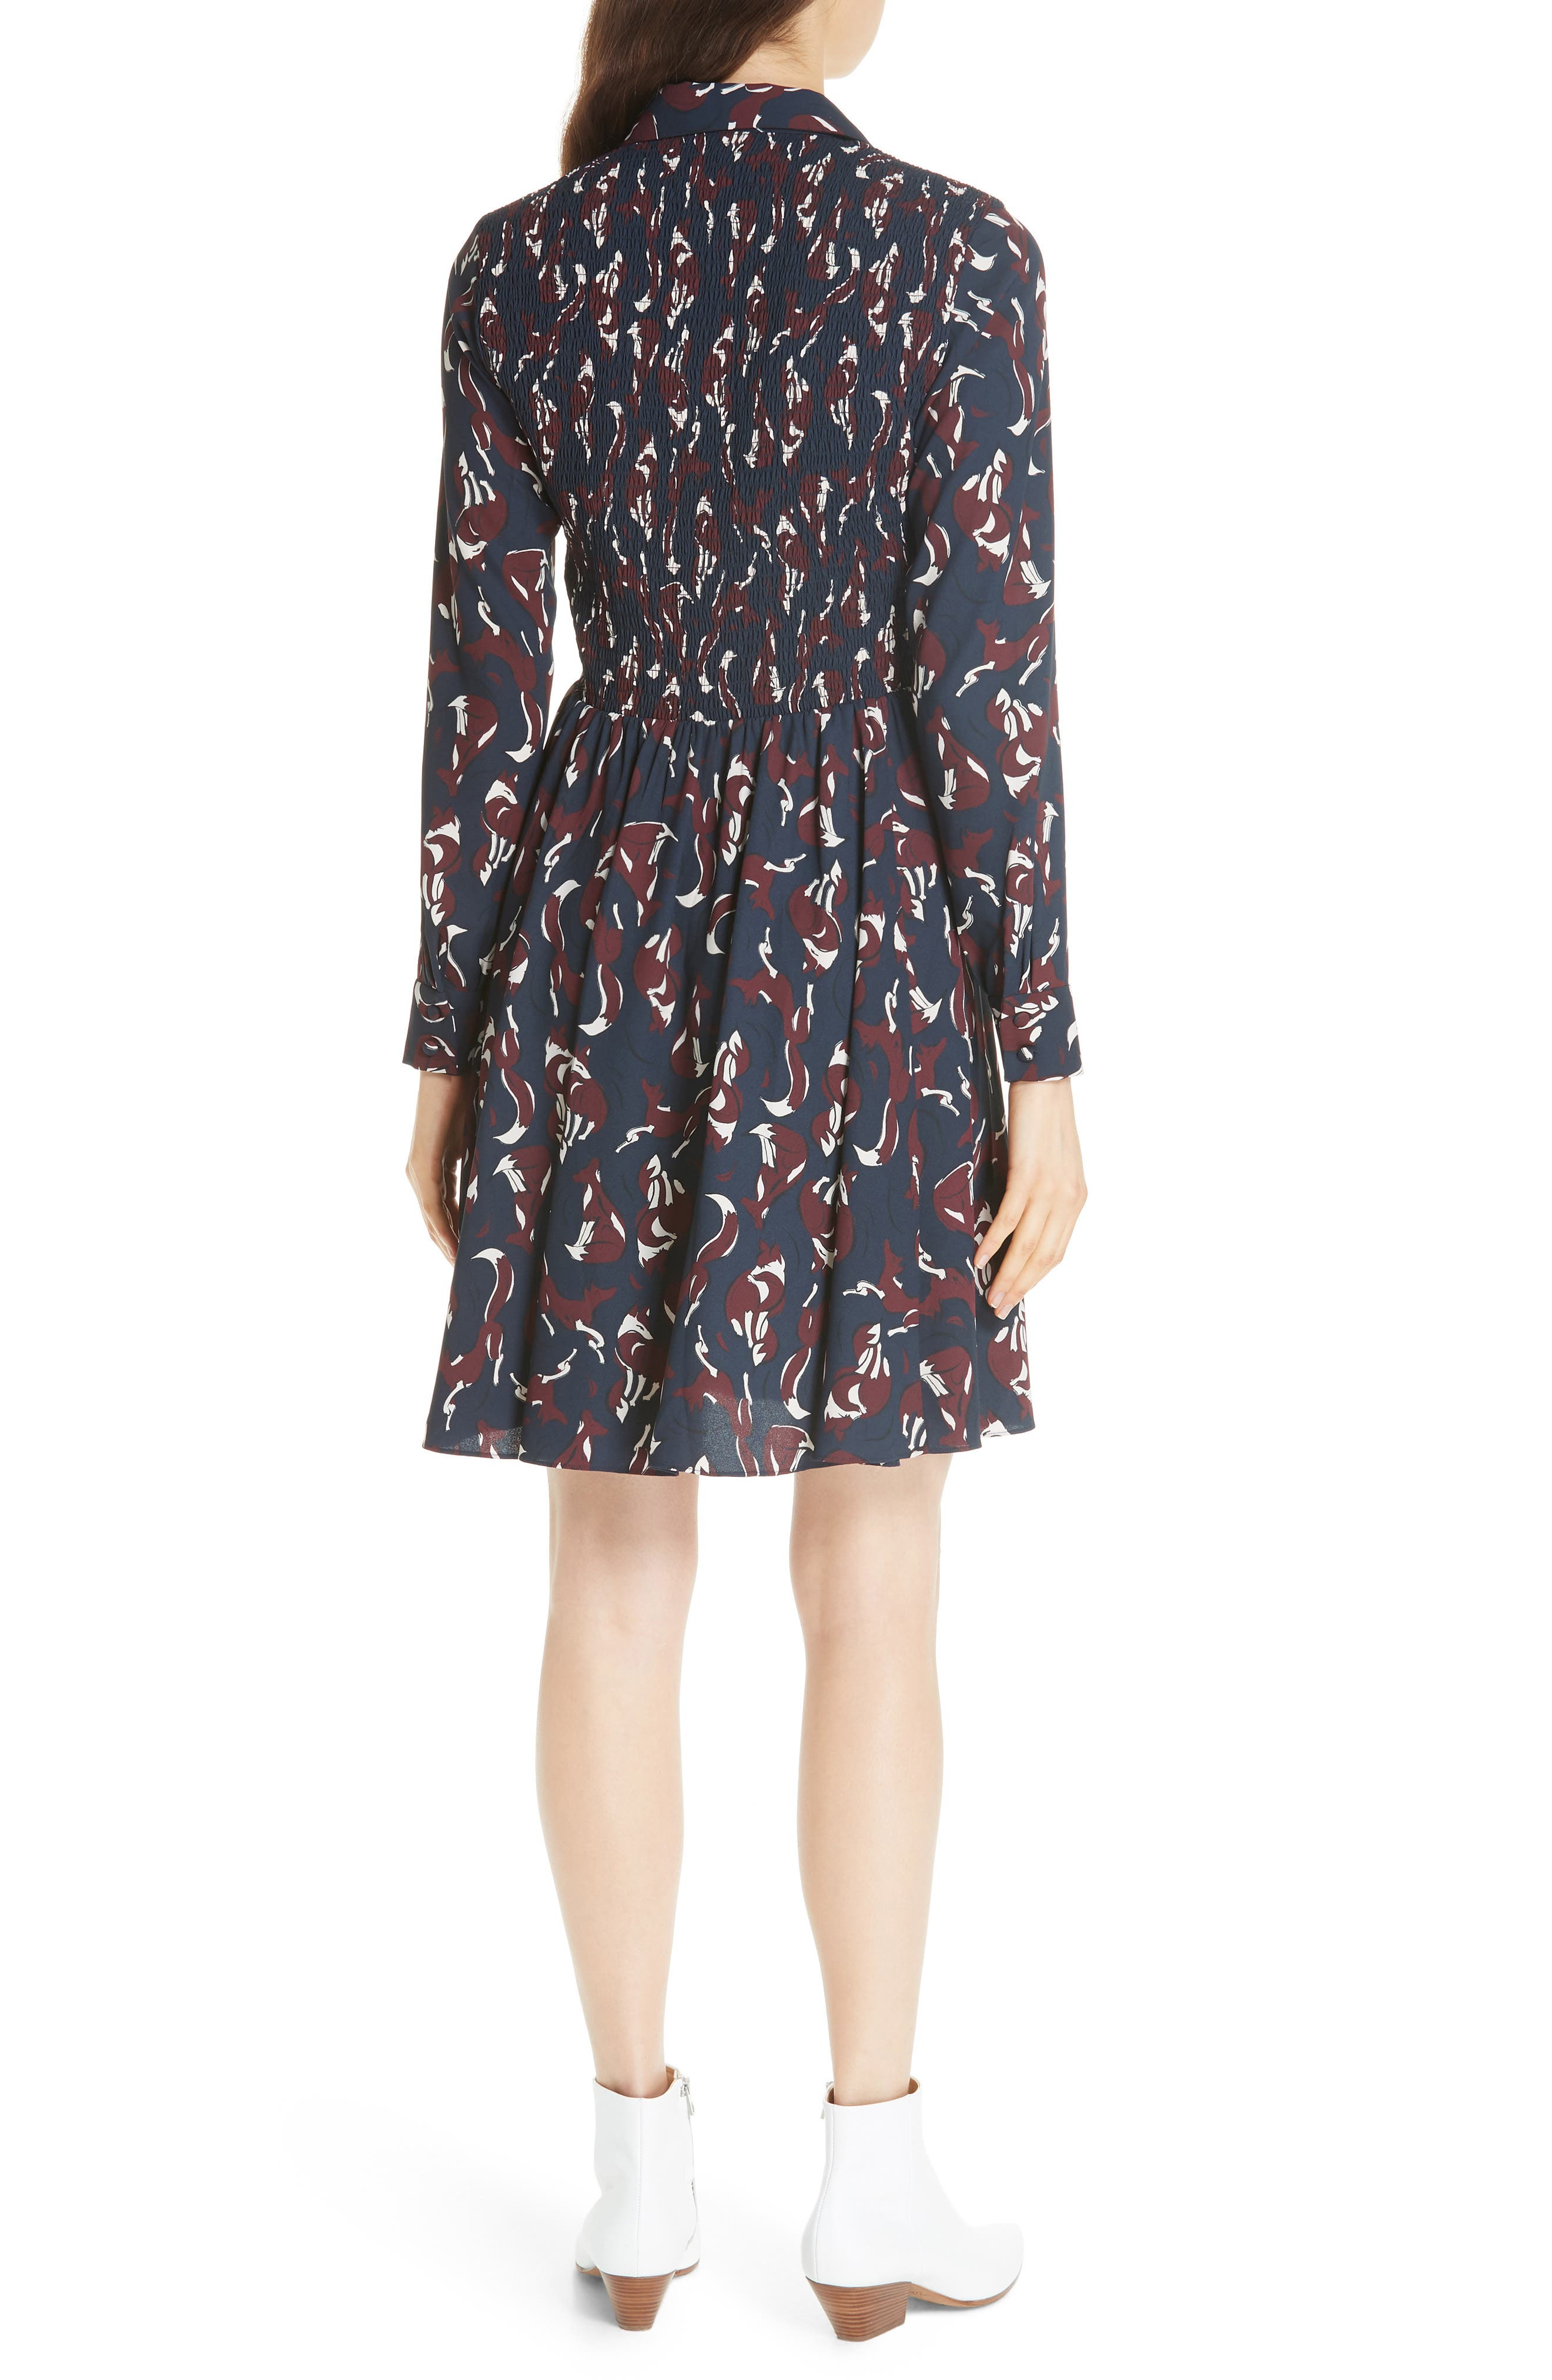 KATE SPADE NEW YORK,                             foxes smocked shirtdress,                             Alternate thumbnail 2, color,                             426